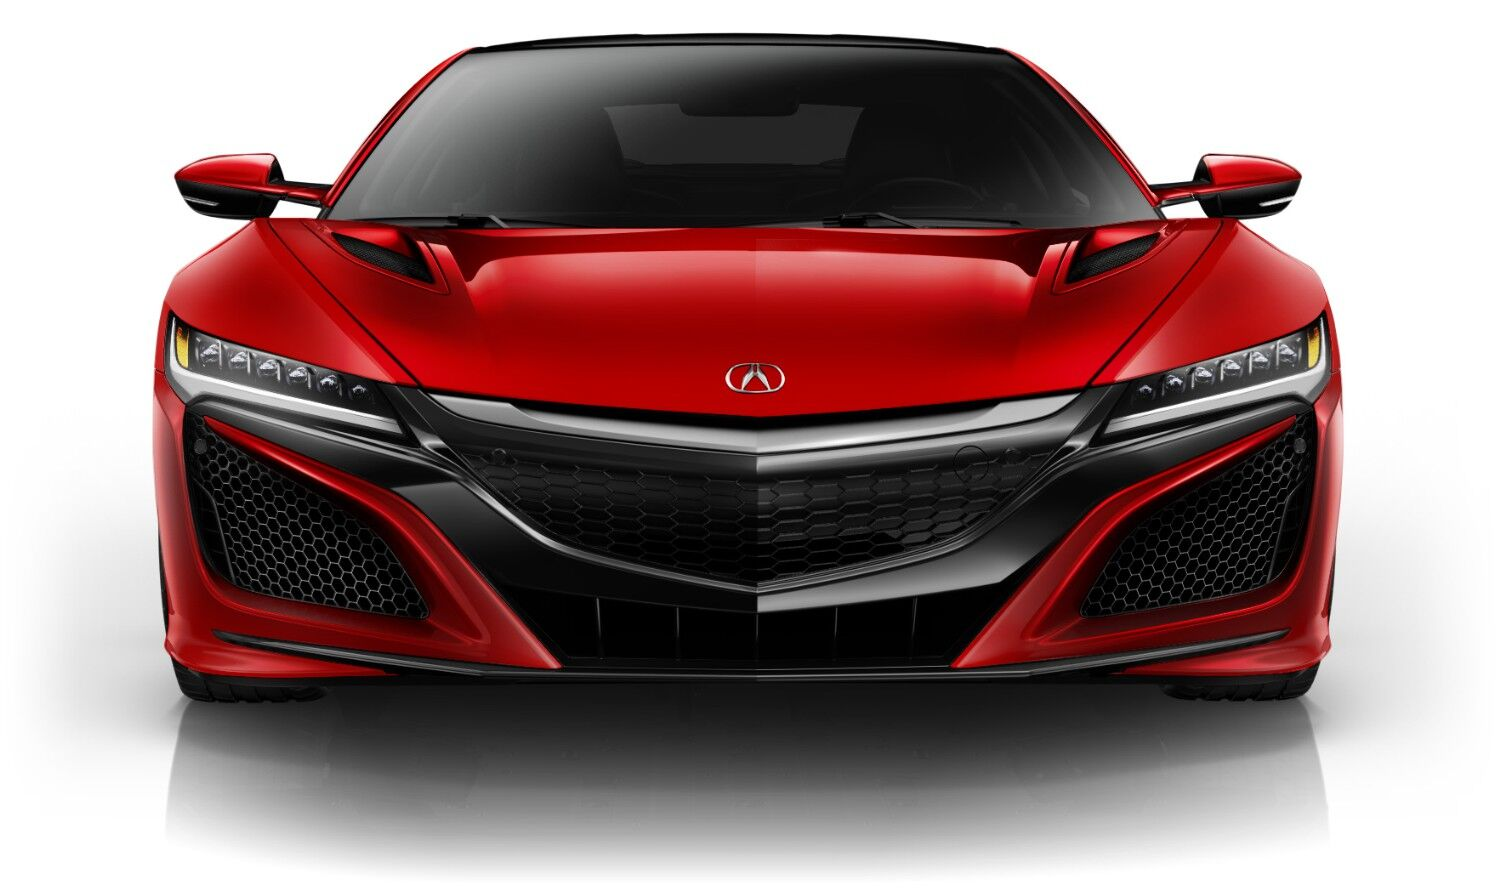 Curva Red 2017 Acura NSX Pittsburgh Wexford PA